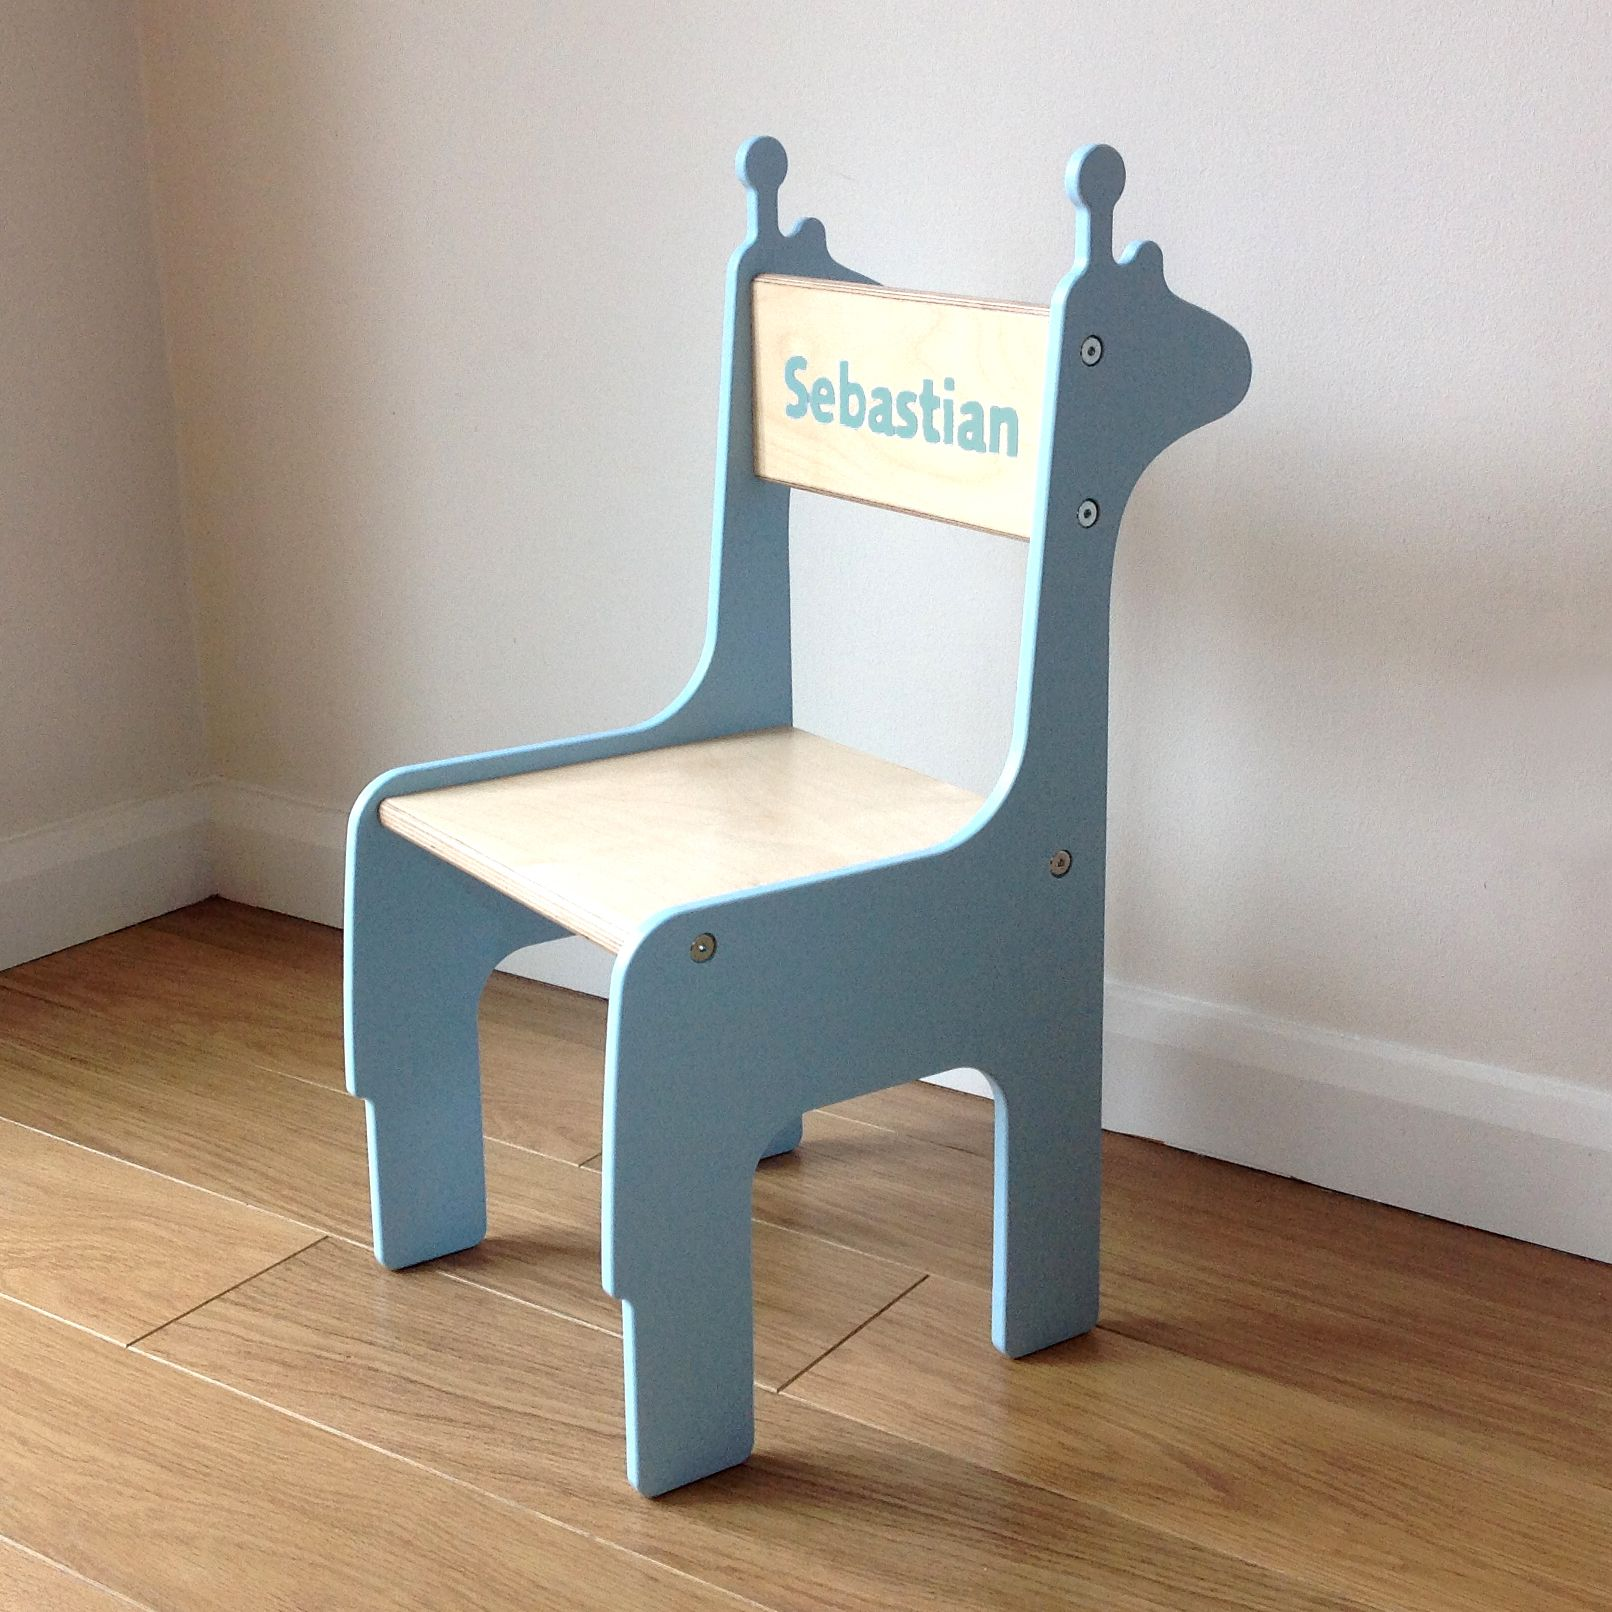 Personalised Blue Giraffe Chair From Piggl. Handmade In Chester, UK